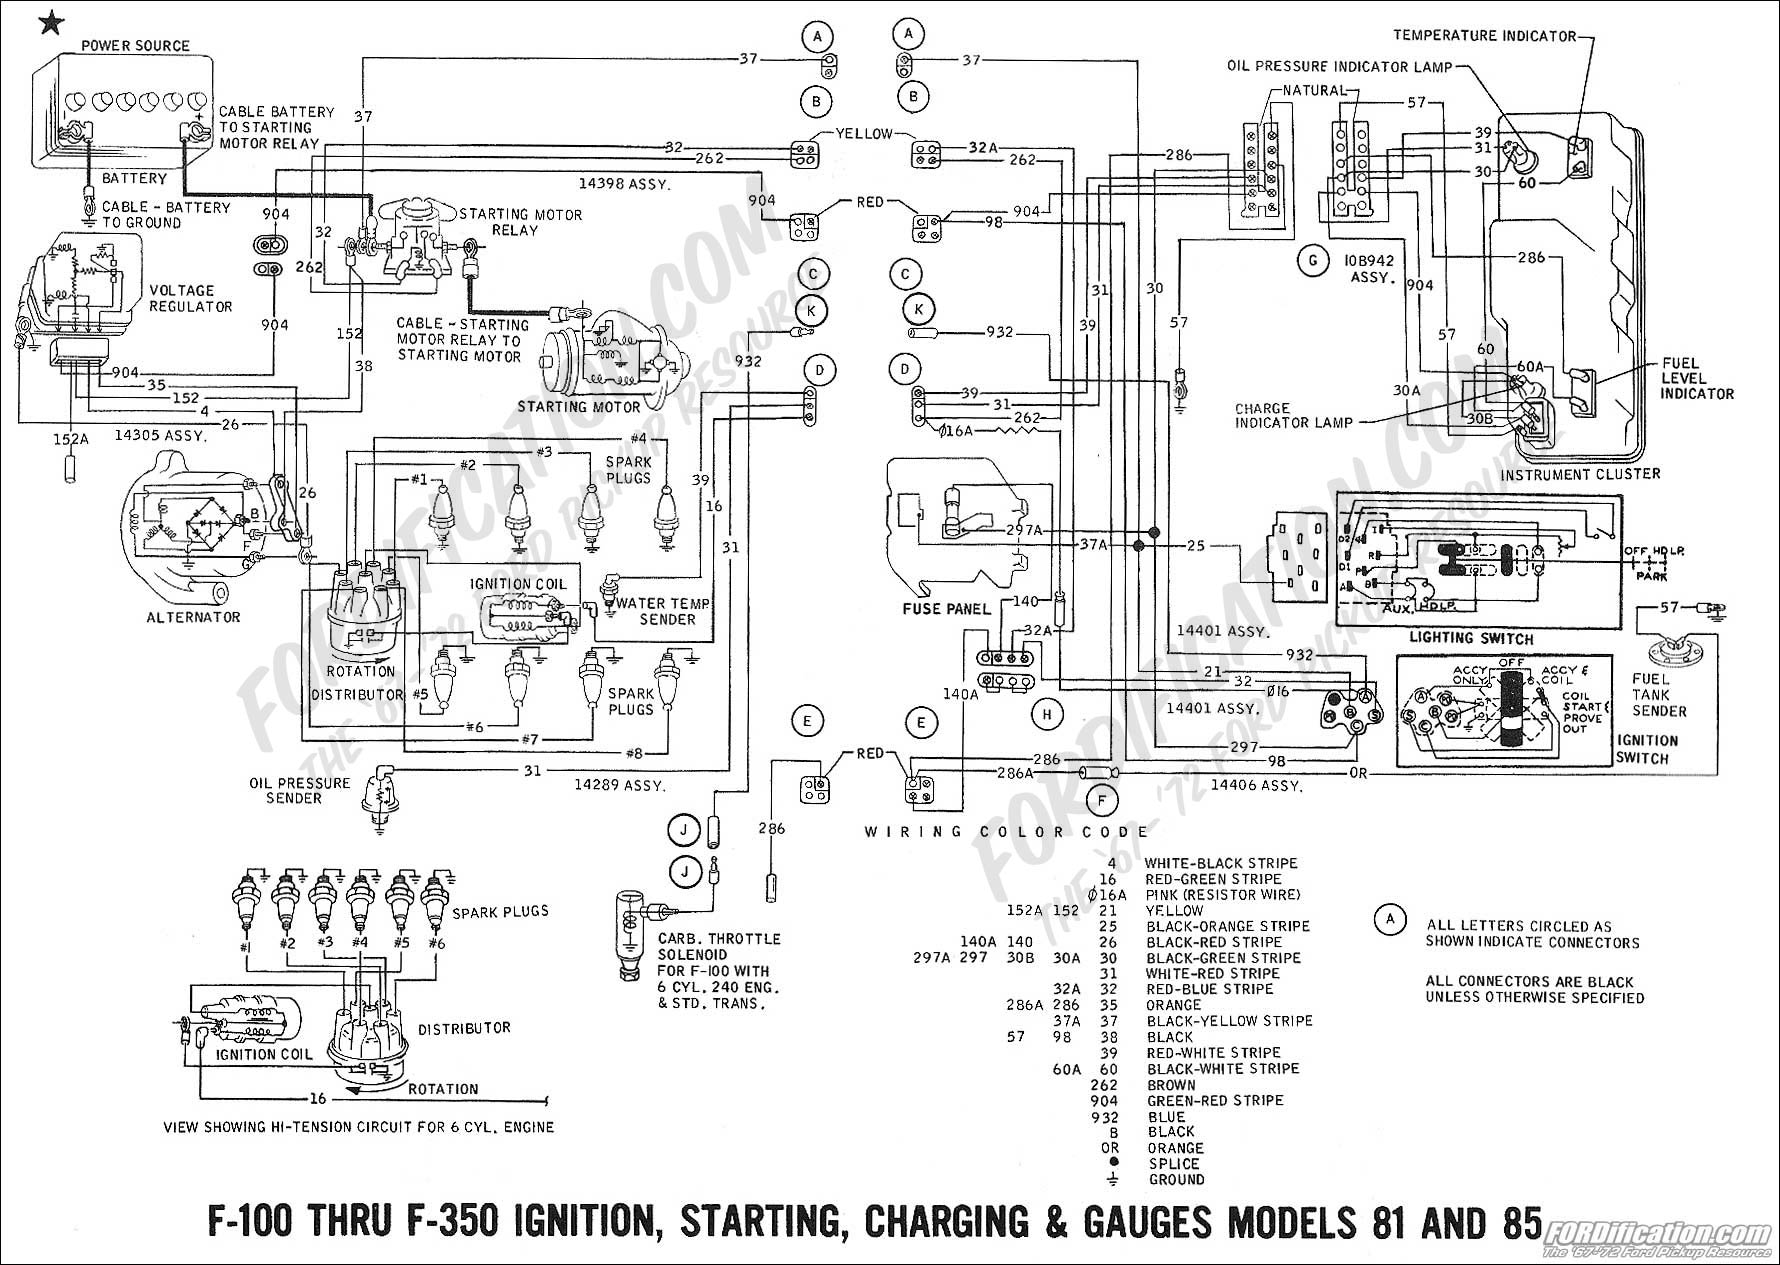 1969 f-100 thru f-350 ignition, charging, starting, and gauges - 02